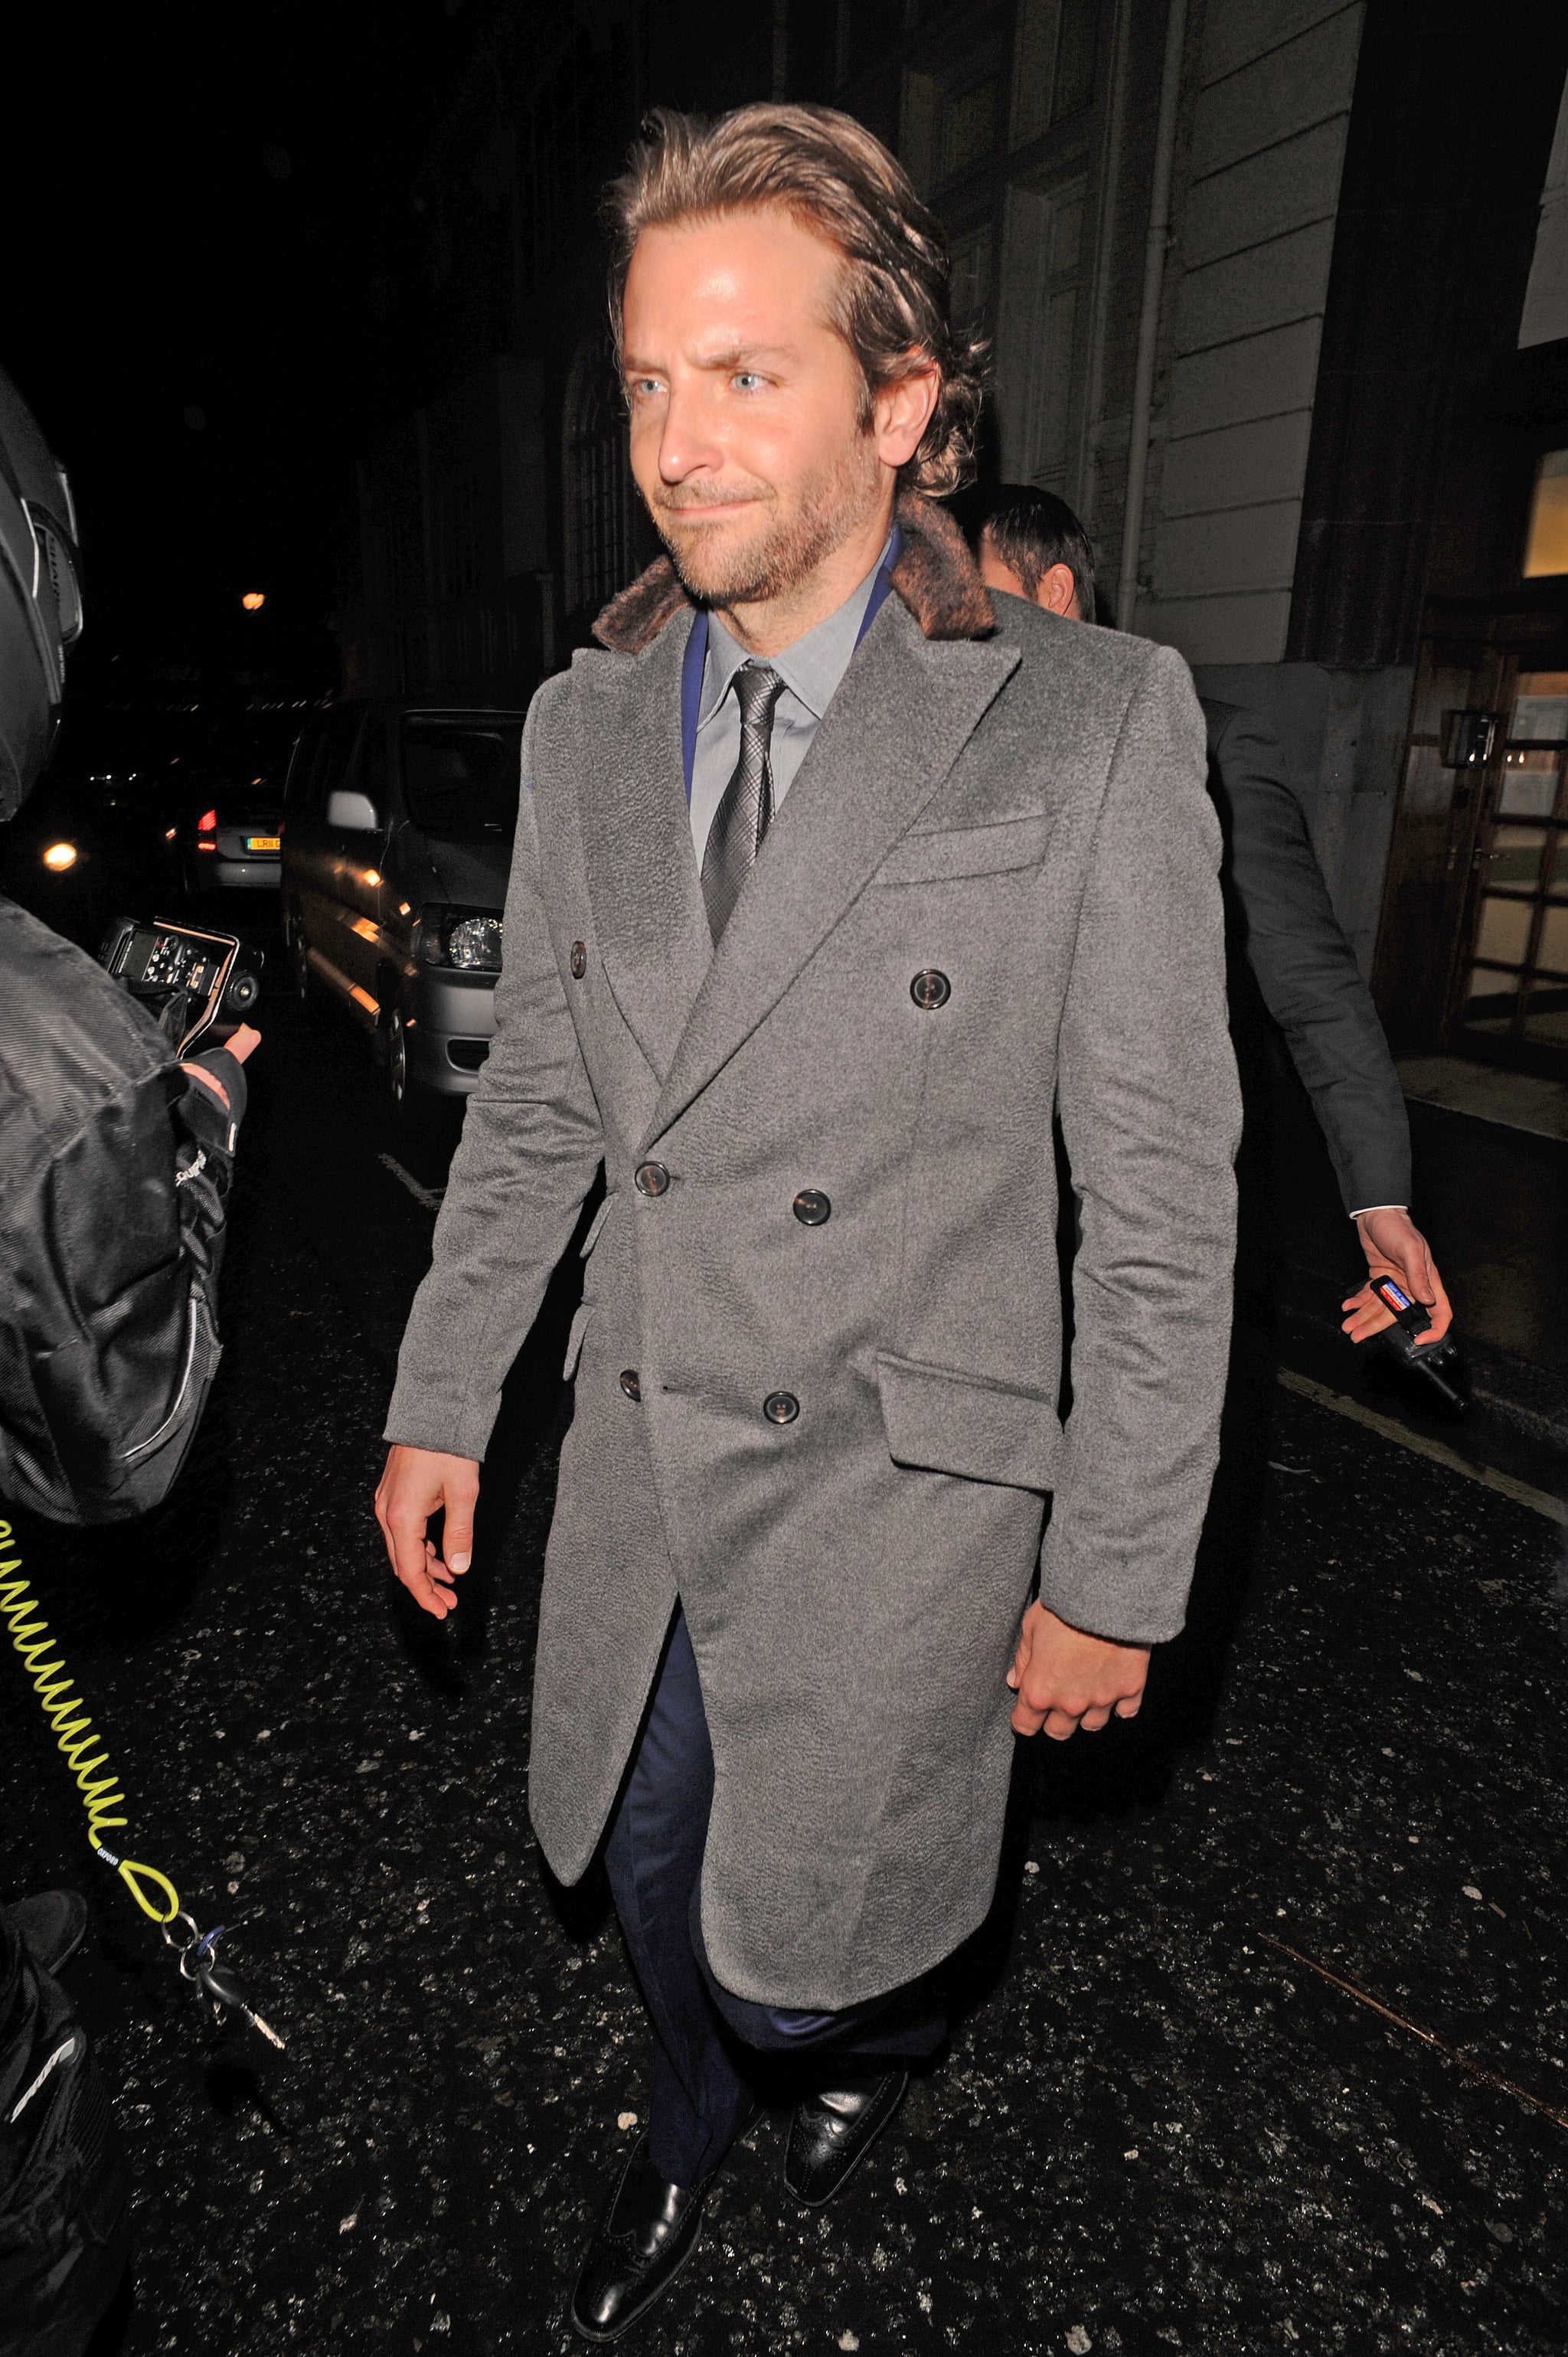 Bradley Cooper sported a coat and tie.